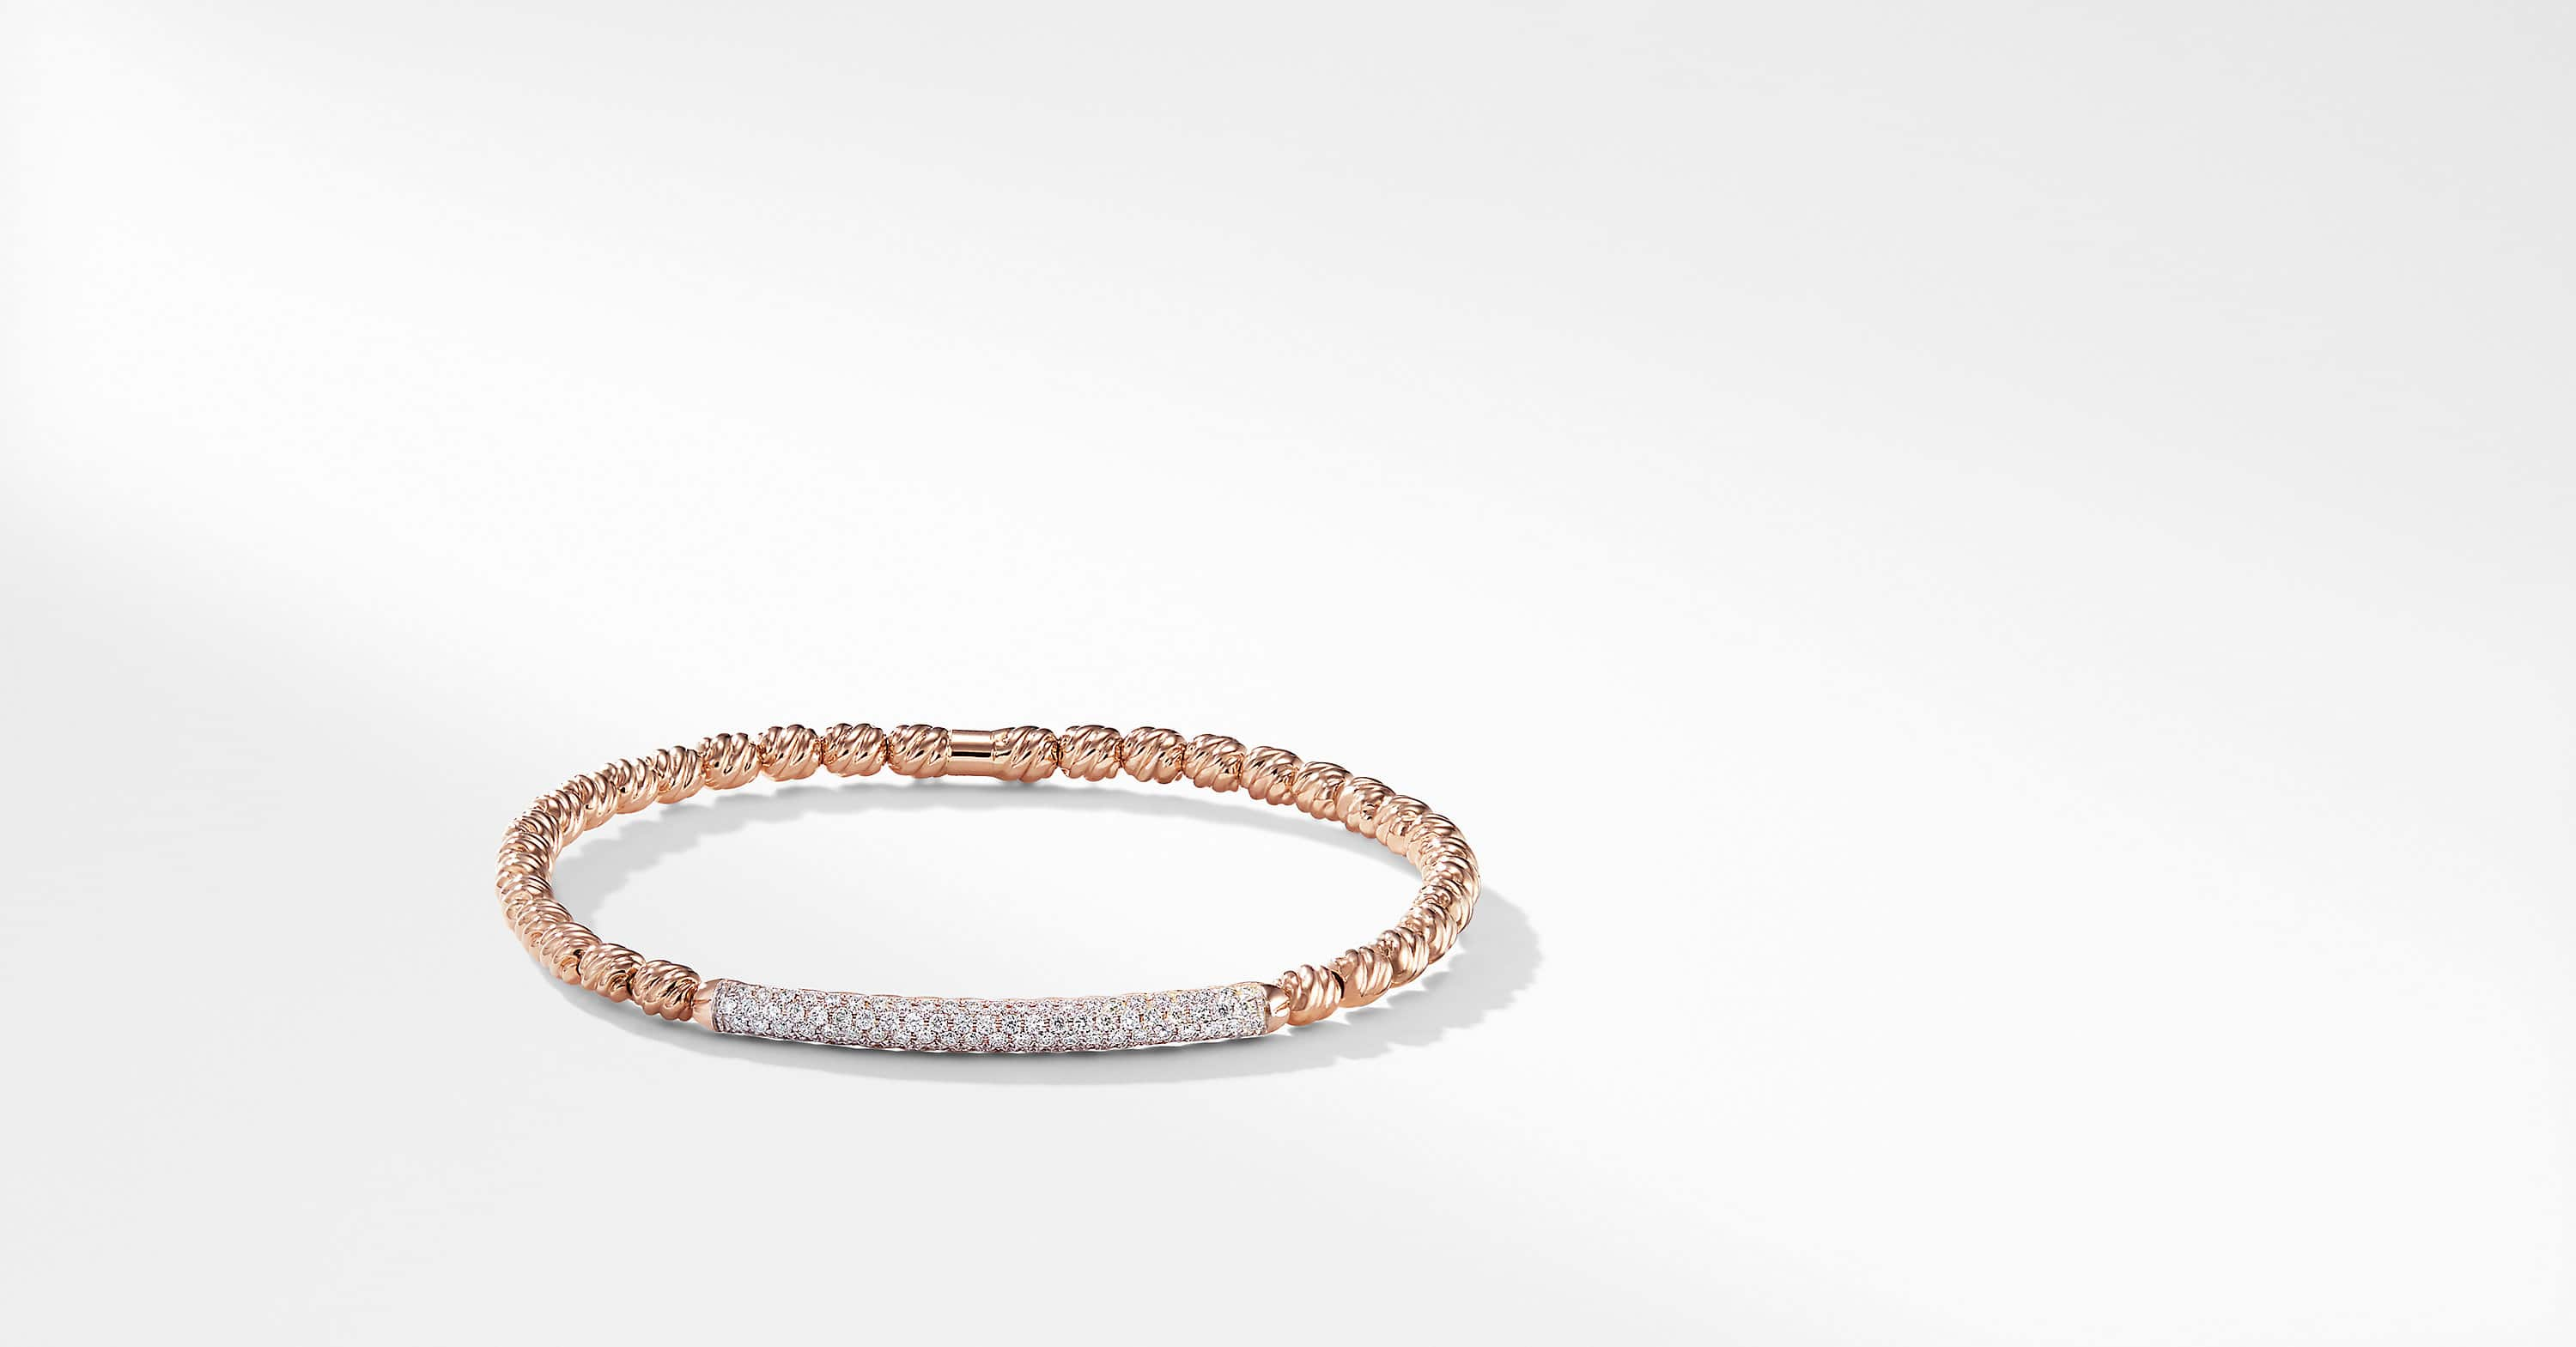 Petite Pave Bracelet with Diamonds in 18K Rose Gold